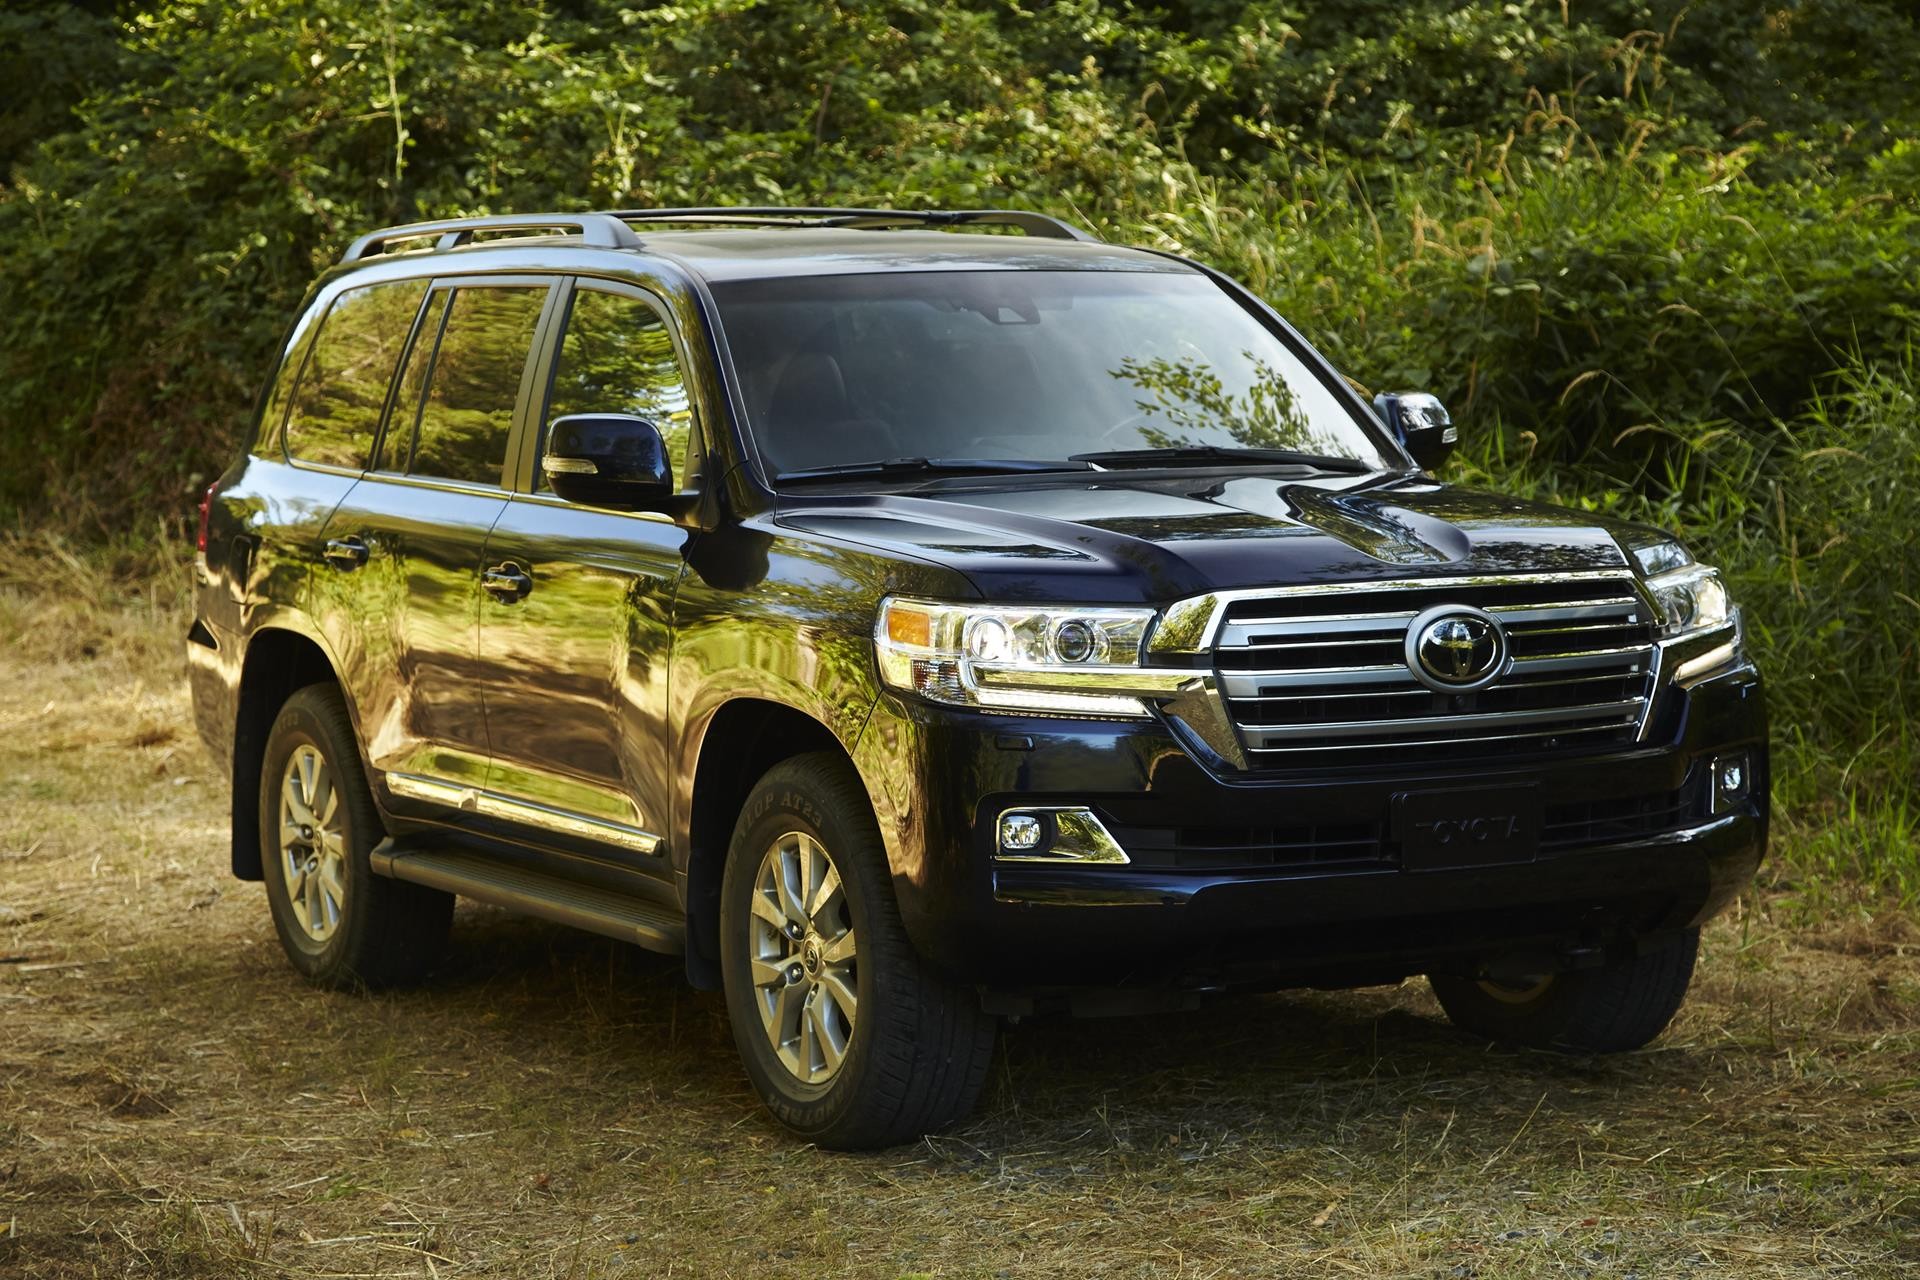 2016 toyota land cruiser technical specifications and data engine dimensions and mechanical details conceptcarz com